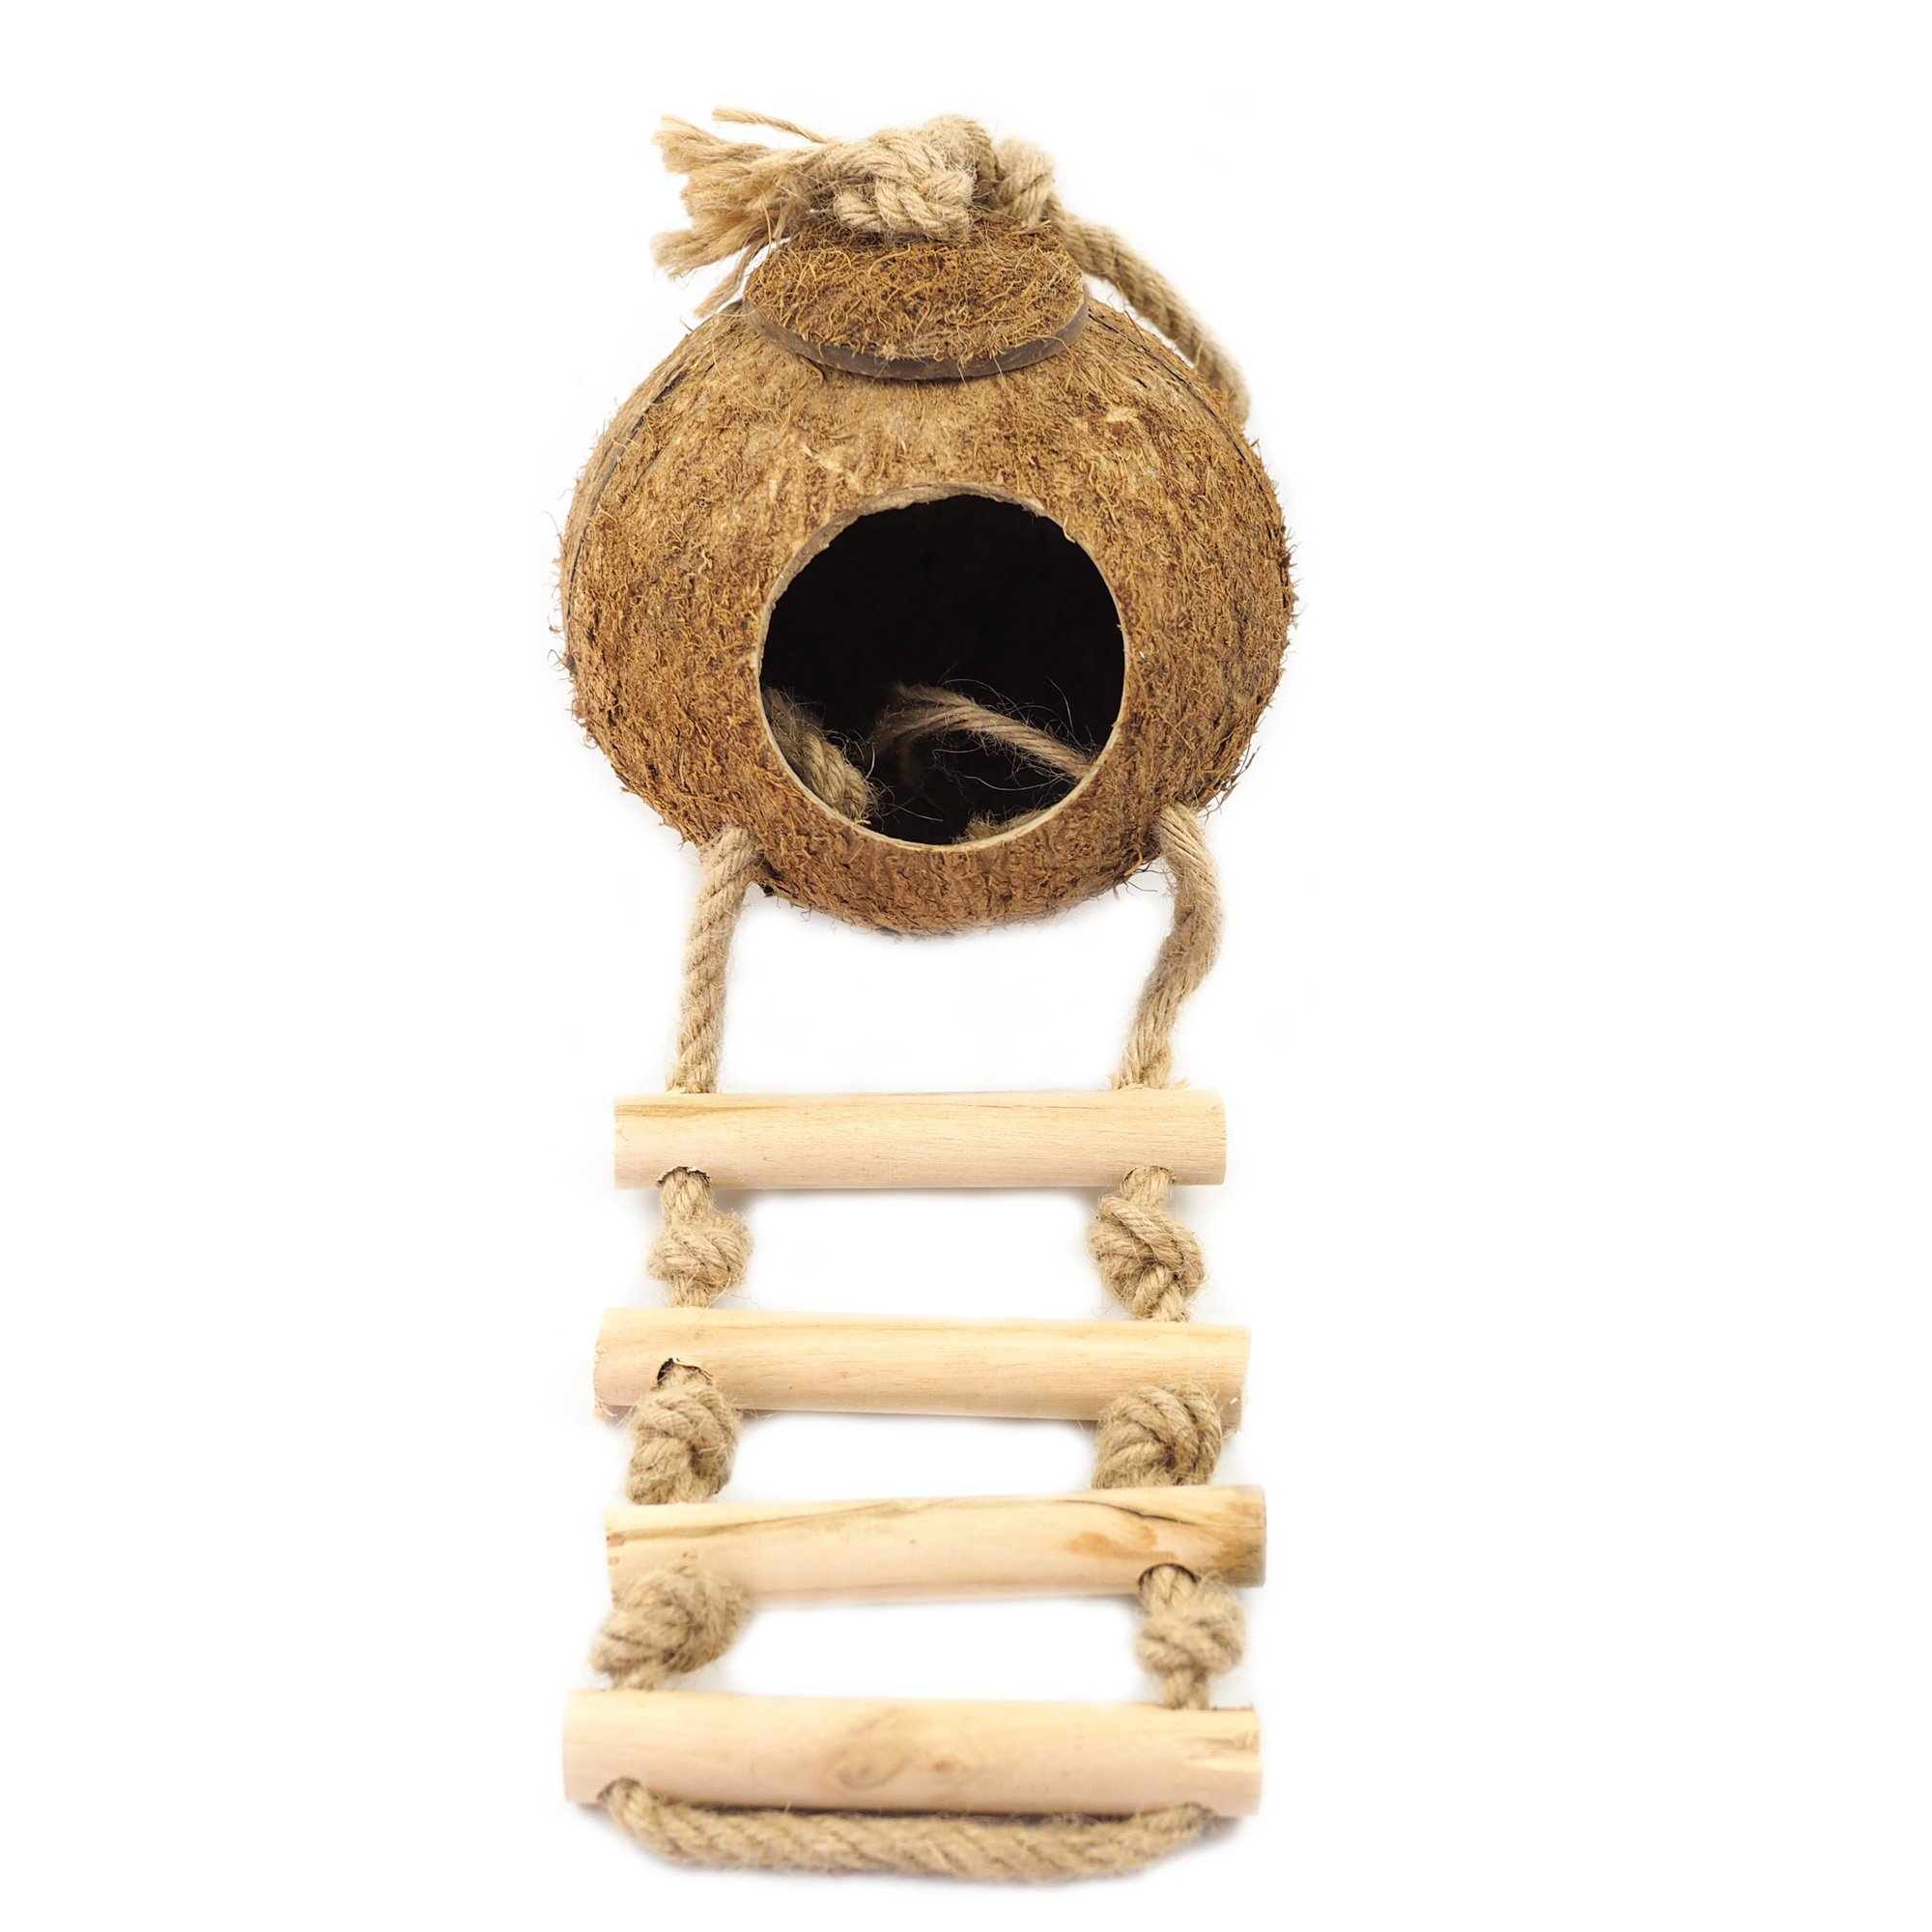 OMEM Hamster Coconut House,Bird House with Ladder ,Suitable for, Squirrels, Birds, Sparrows, Parrots,Small Animals